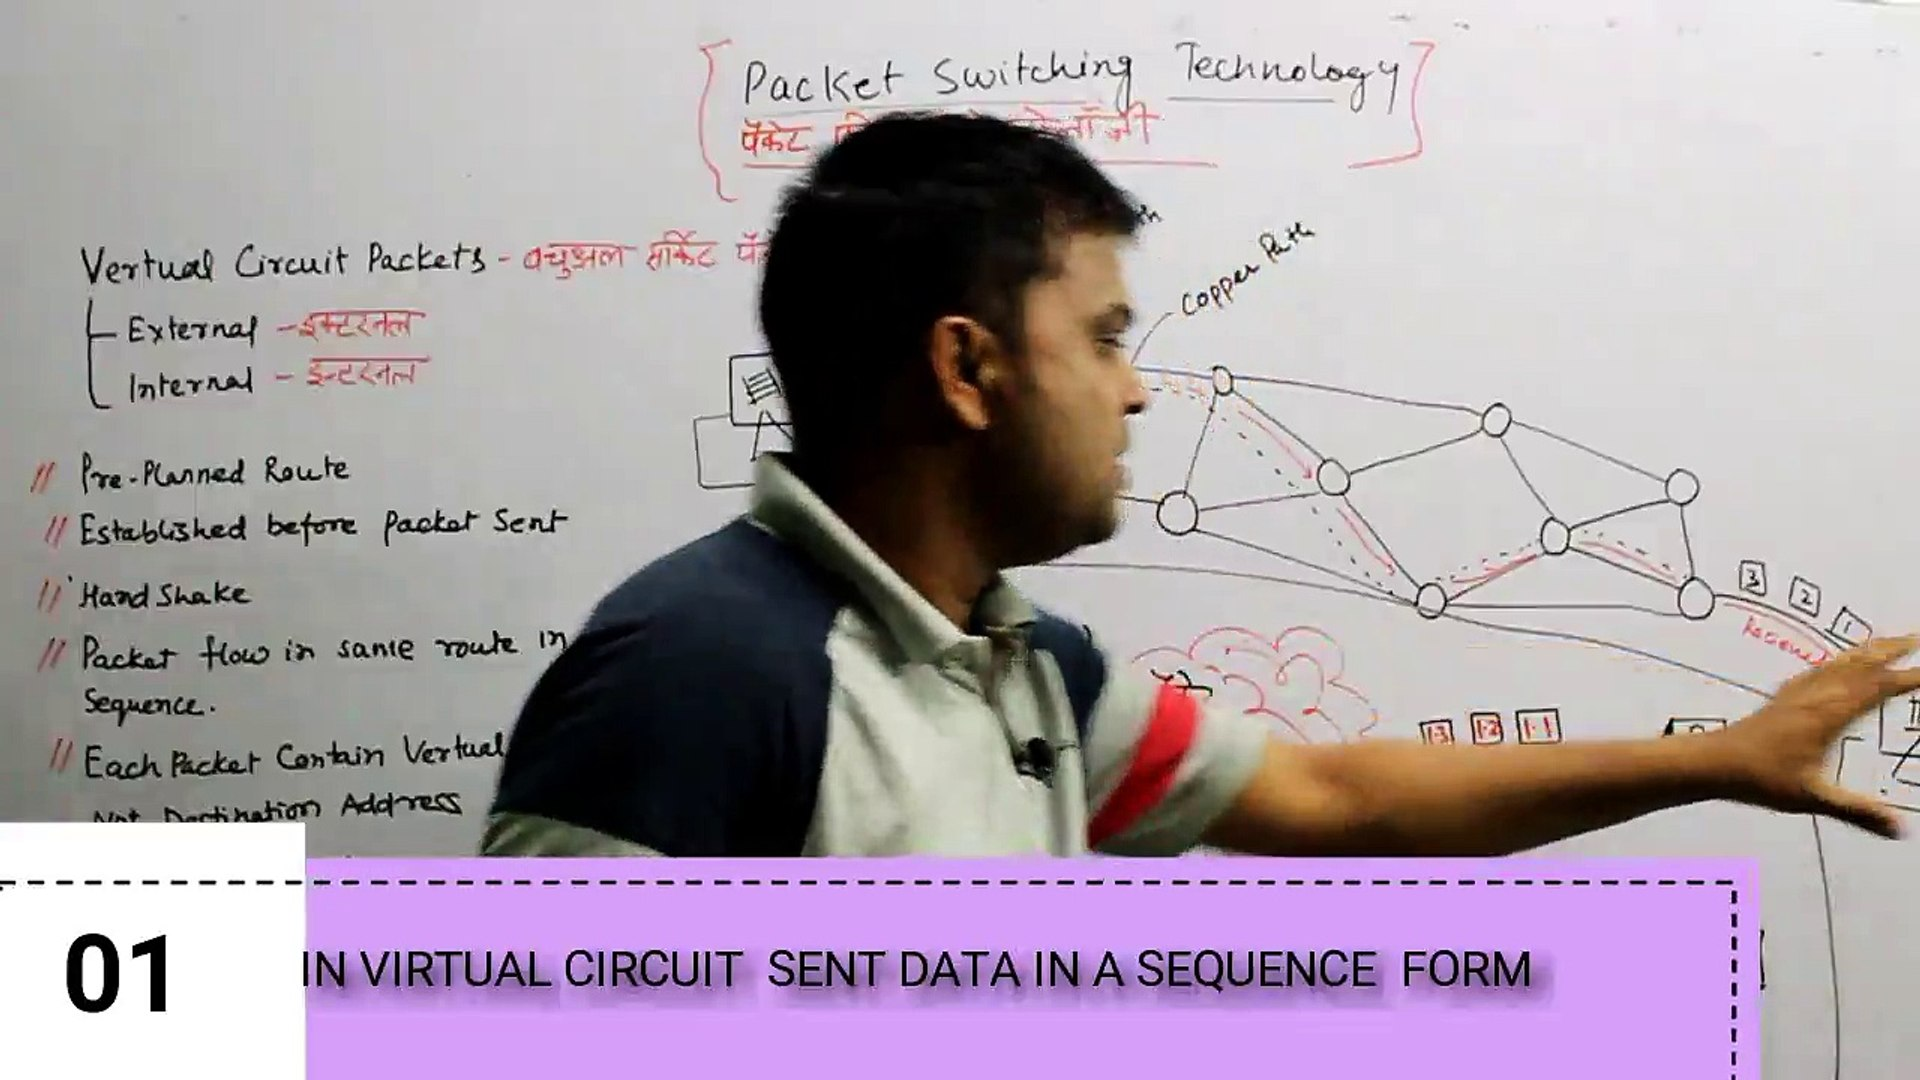 INTERNET TECHNOLOGY AND WEB DESIGN TCP/IP – Internet Technology and Protocol Packet switching techno